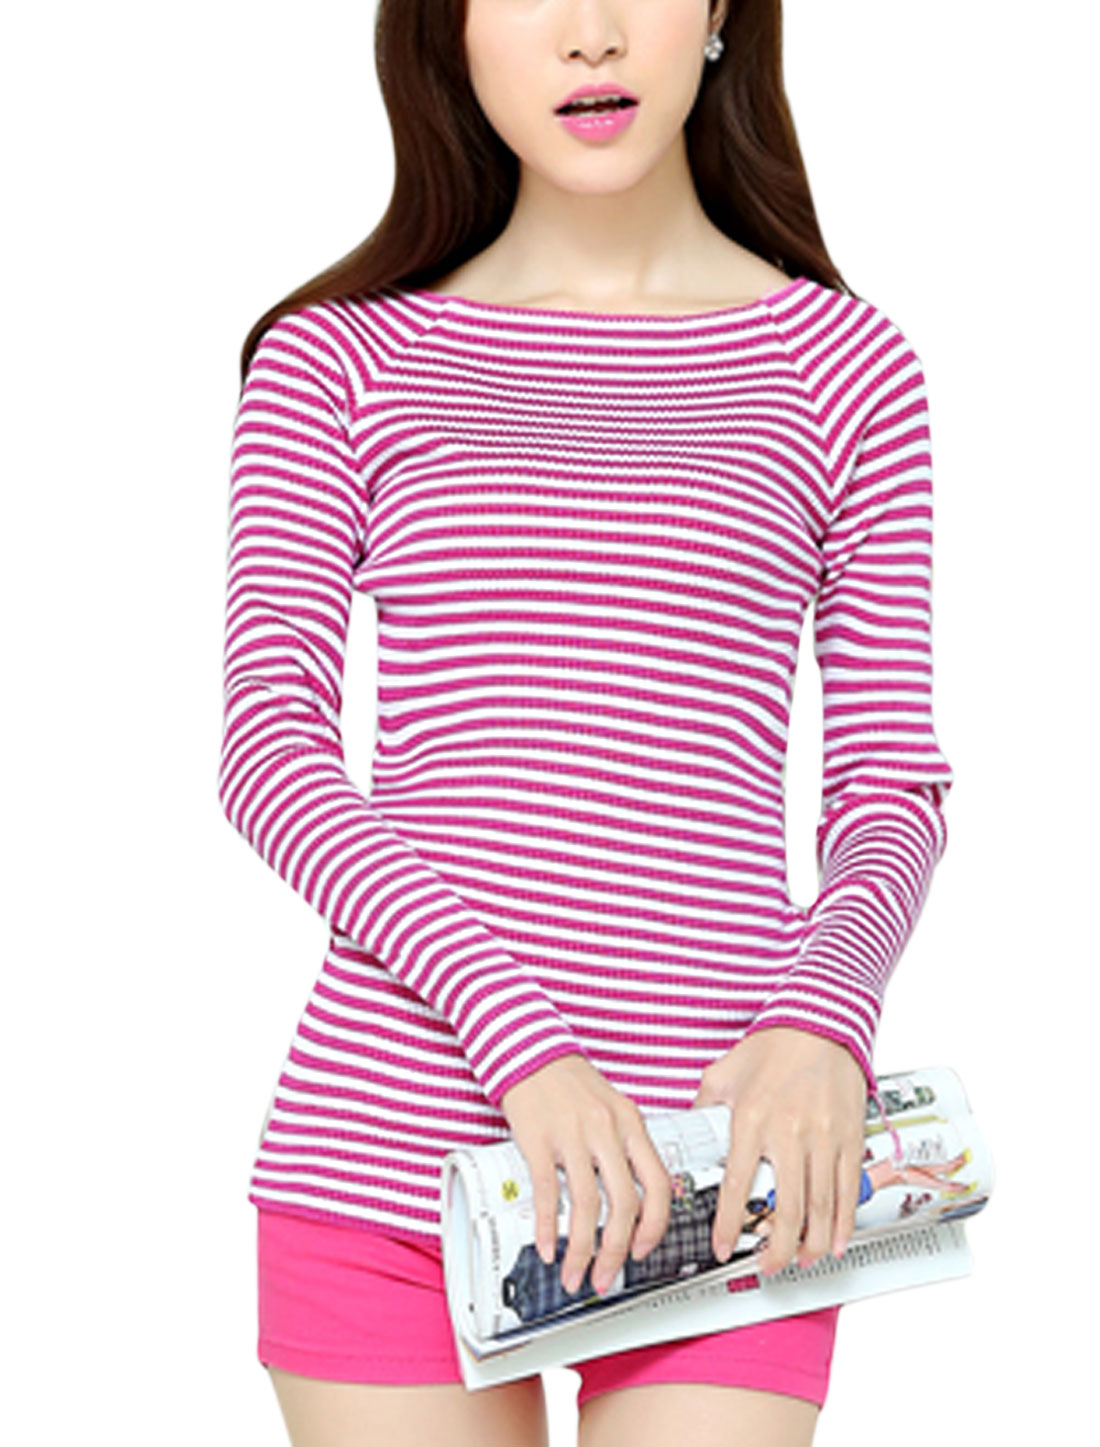 Women Stylish Design Stripes Off Shoulder Fuchsia White Knit Shirt XS